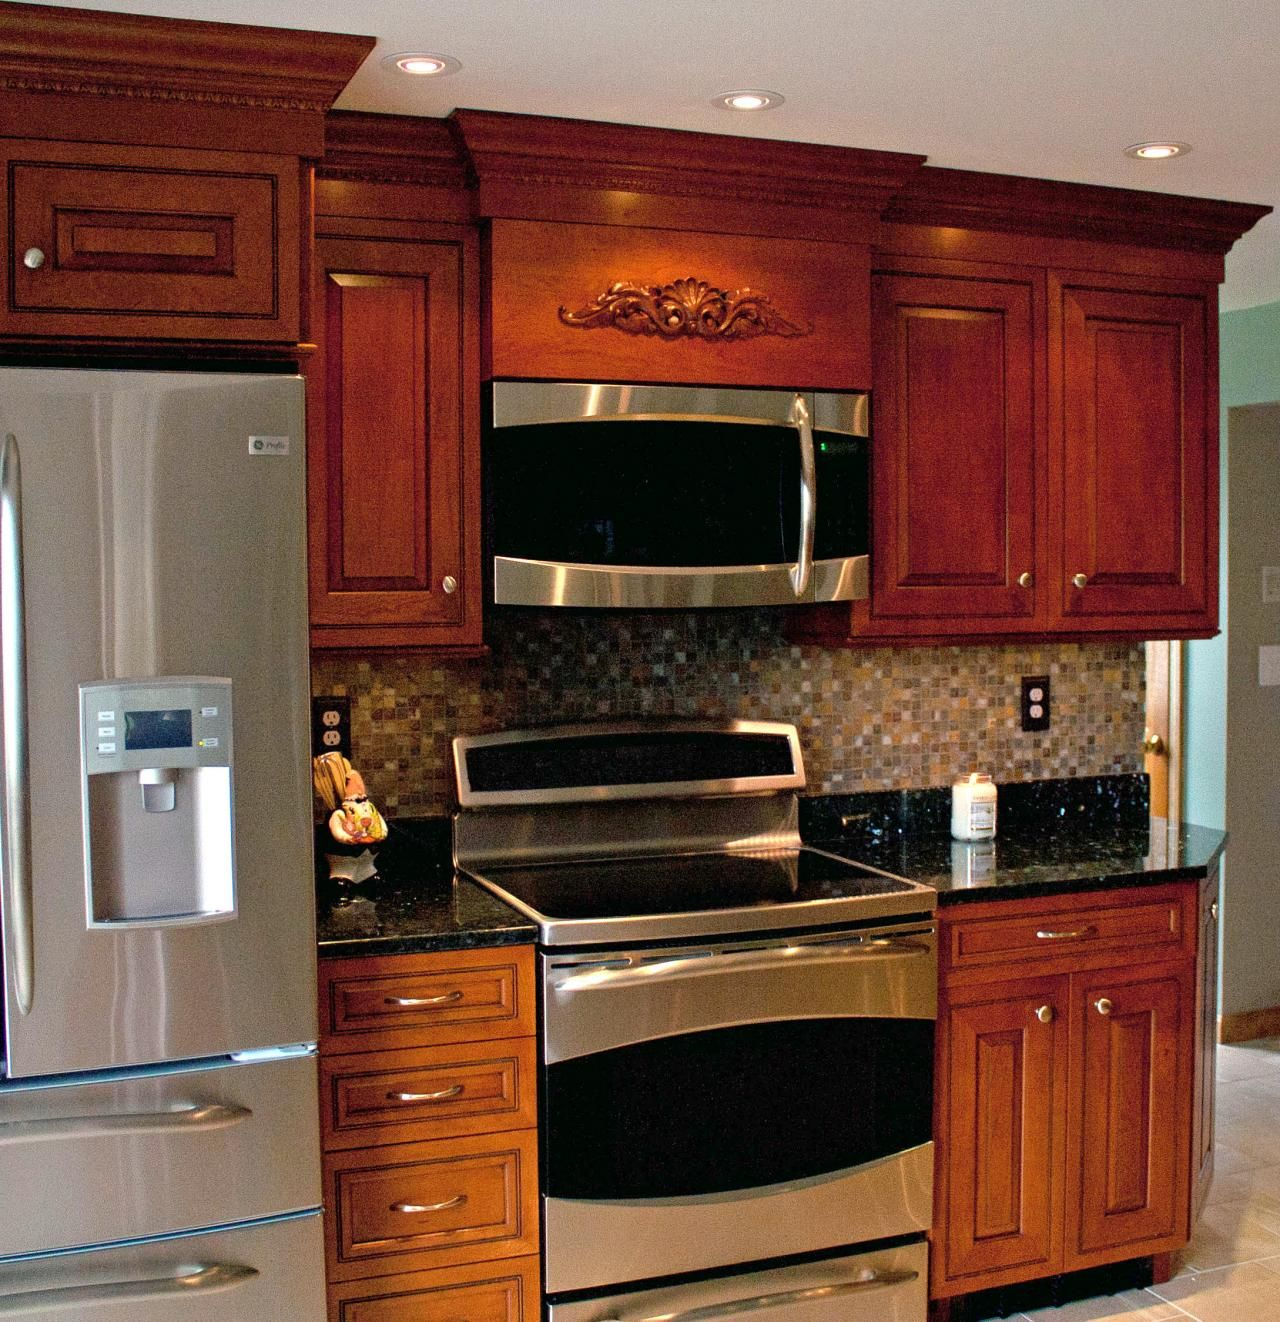 Kitchen Furniture Perth: UltraCraft Perth Amboy Cherry Amber With Brown Glaze